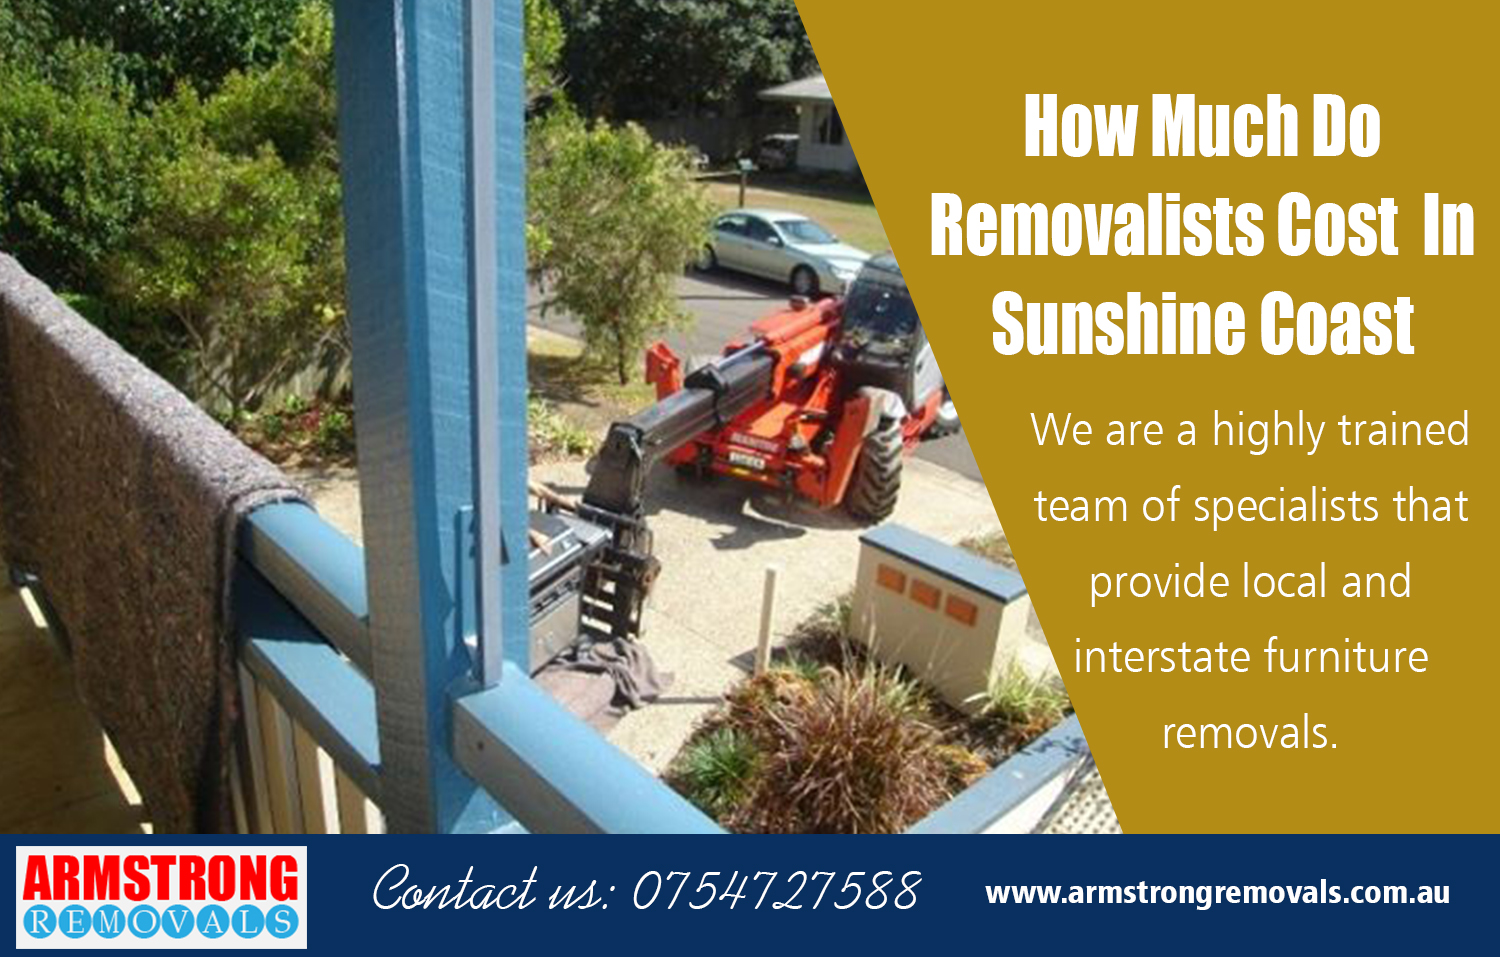 How Much Do Removalists Cost In Sunshine Coast